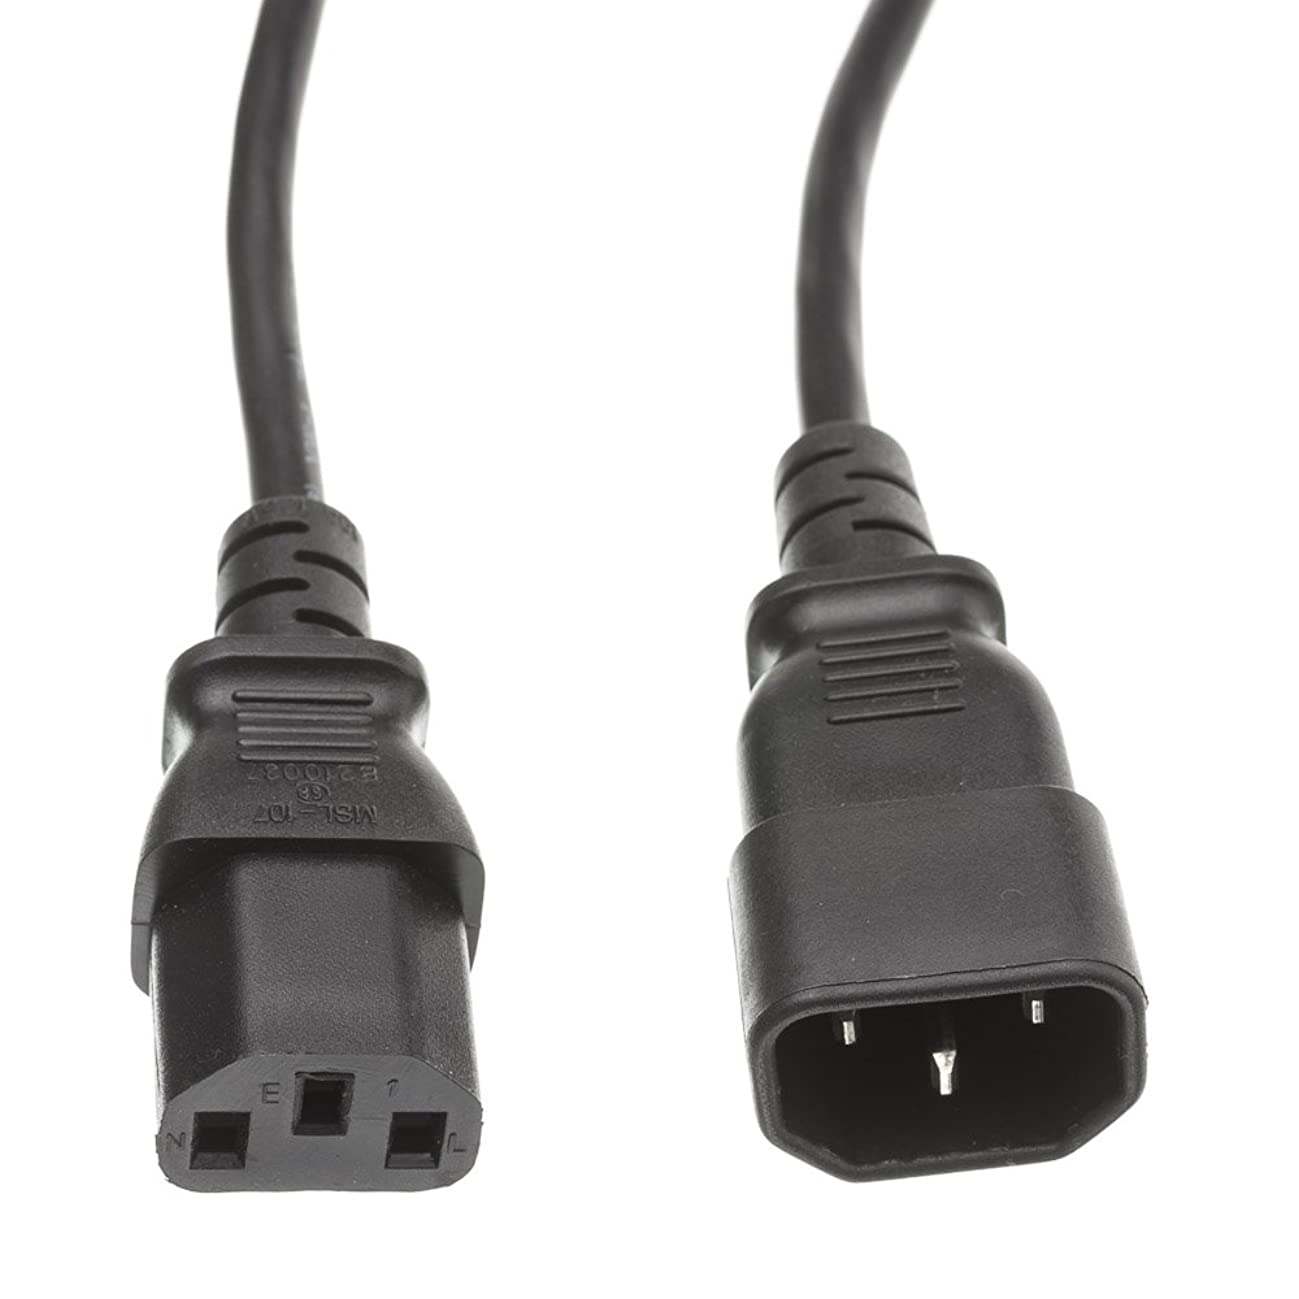 Computer/Monitor Power Extension Cord, Black, C13 to C14, 10 Amp, 25 Foot